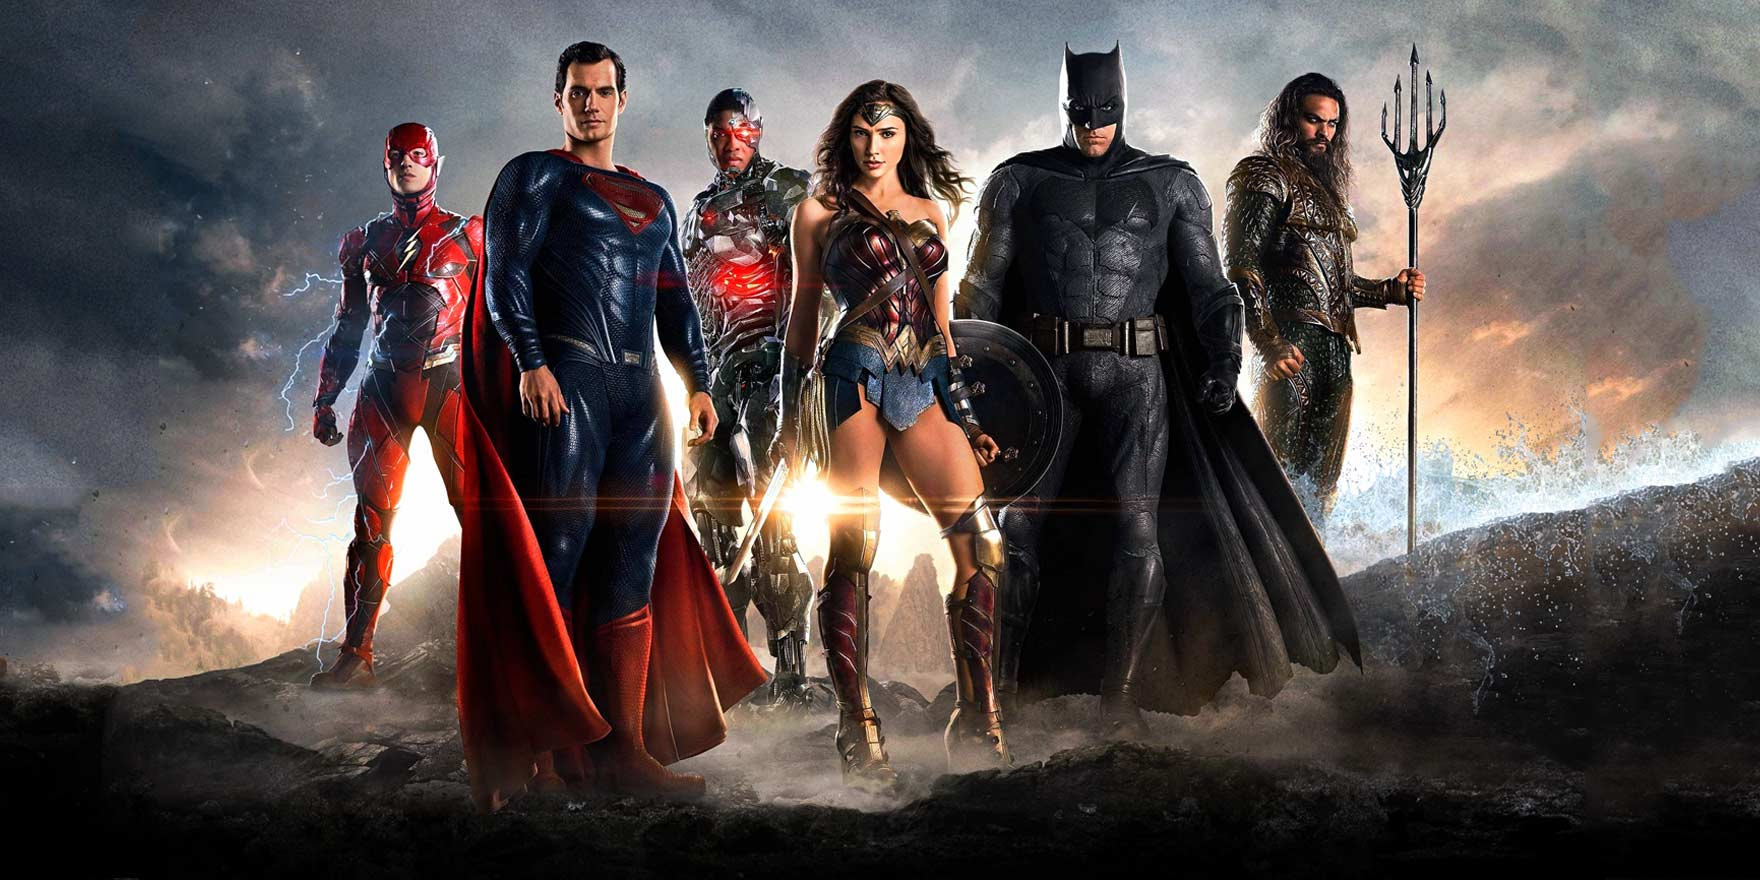 Justice League (3D) - Header Image